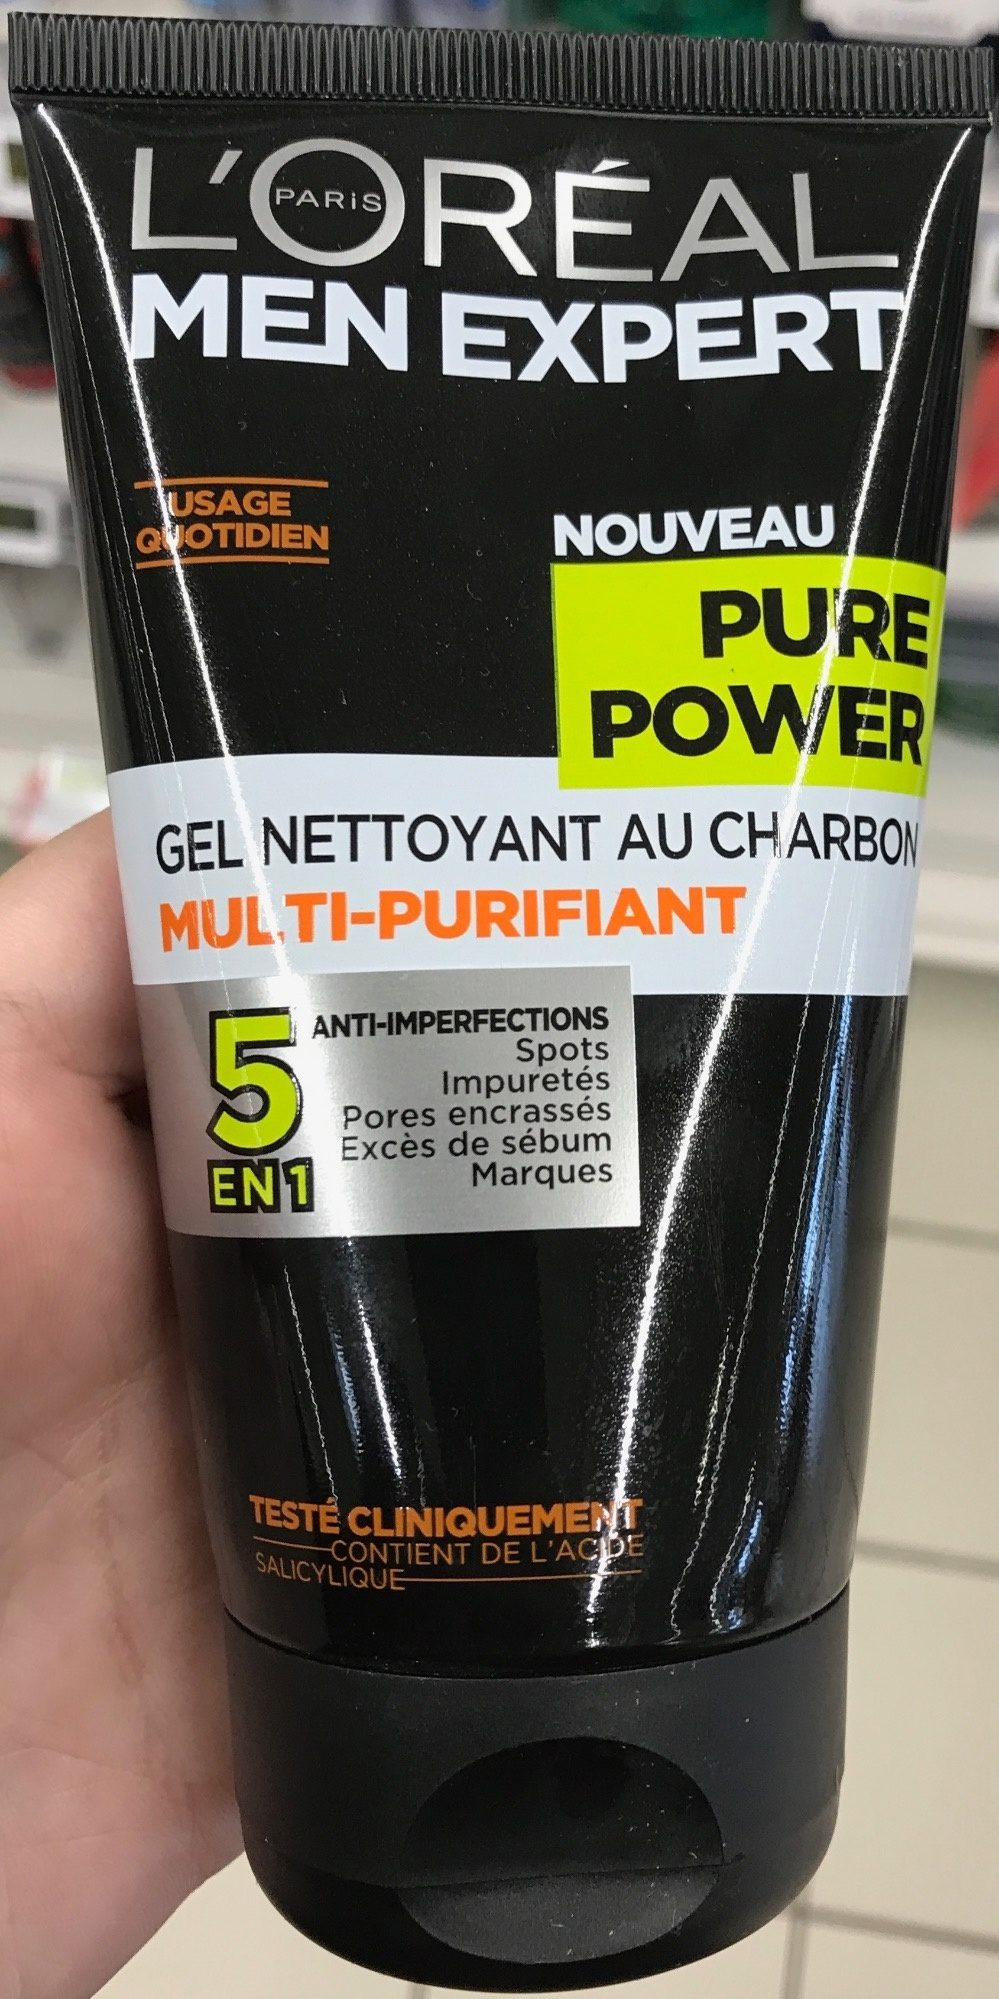 Gel nettoyant au charbon multi-purifiant Pure Power 5 en 1 - Produit